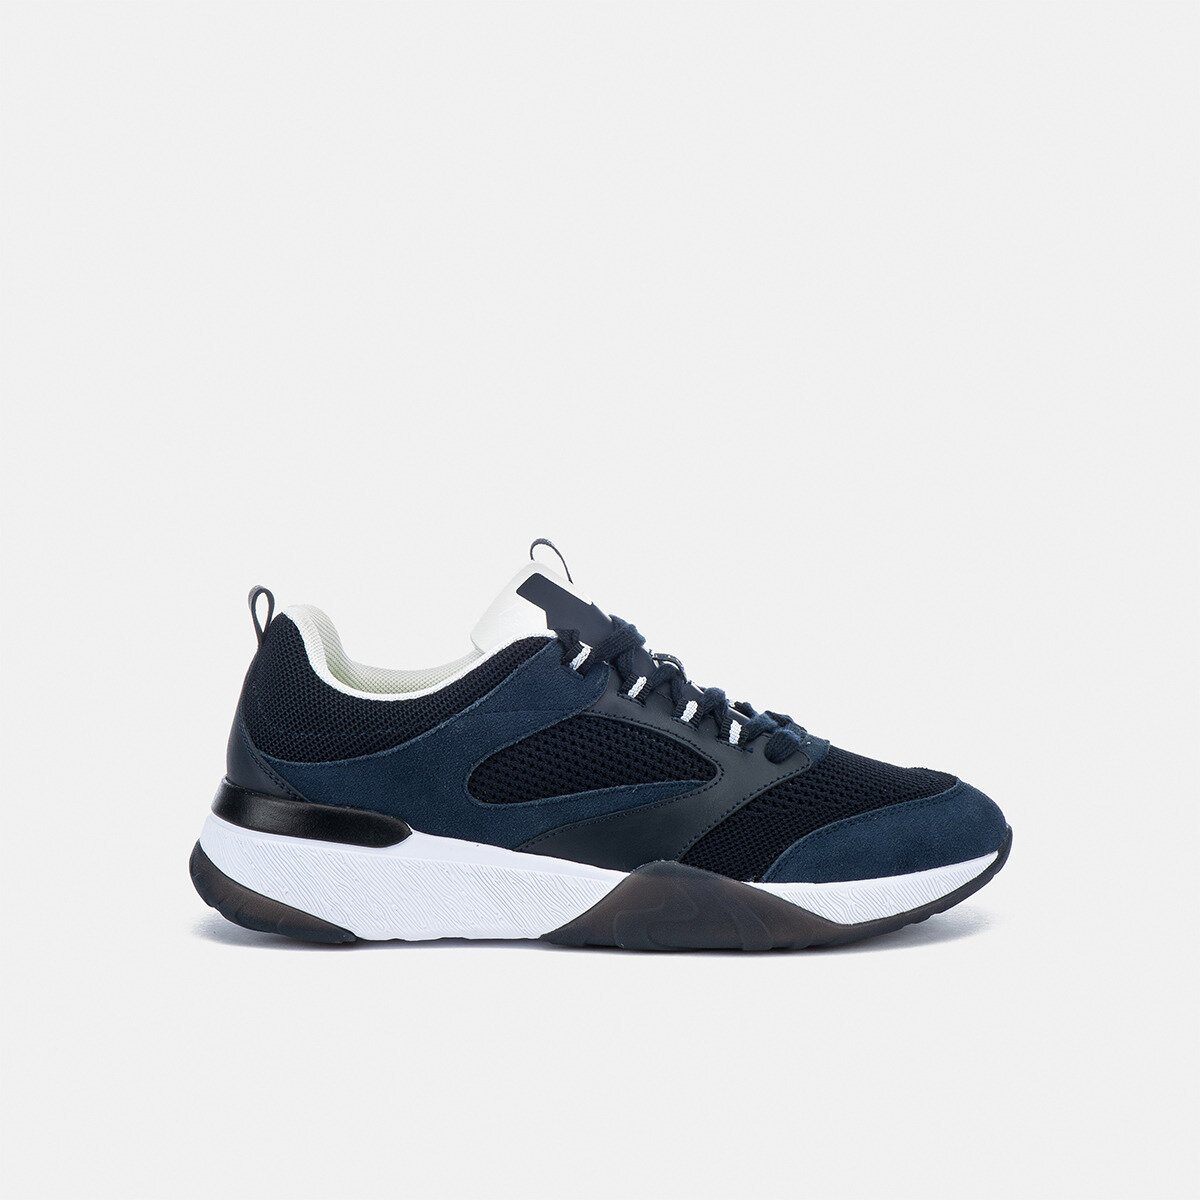 MIAMI MOOD INDIGO BLUE Man Sneakers